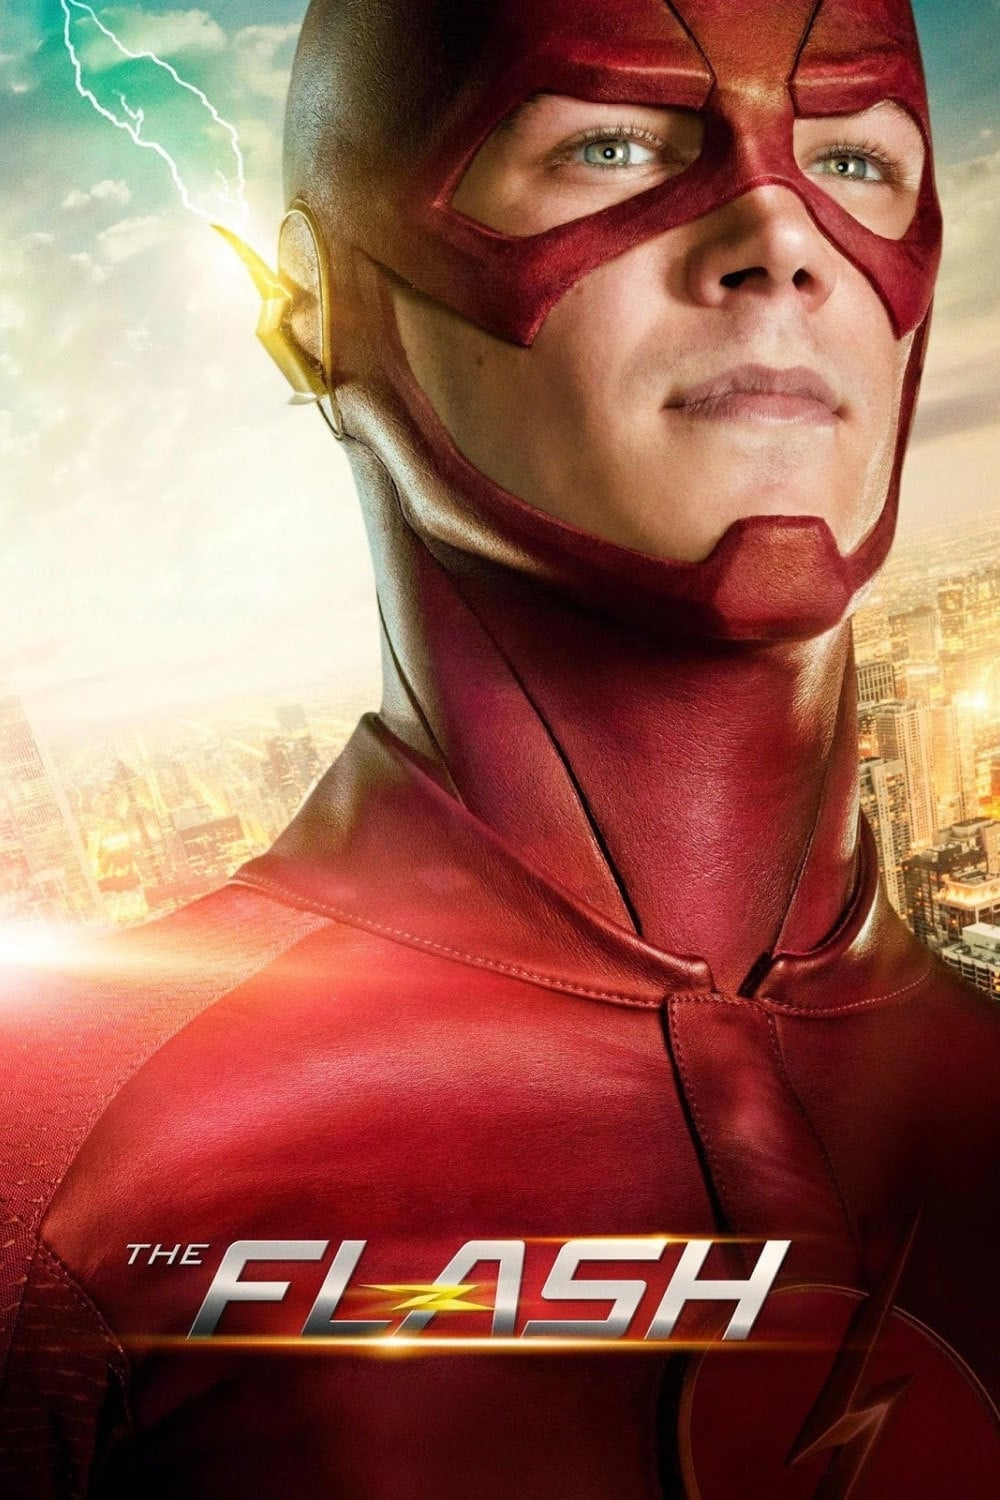 The Flash | S05 | 2018 | English | 1080p | 720p | AMZN WEB-DL